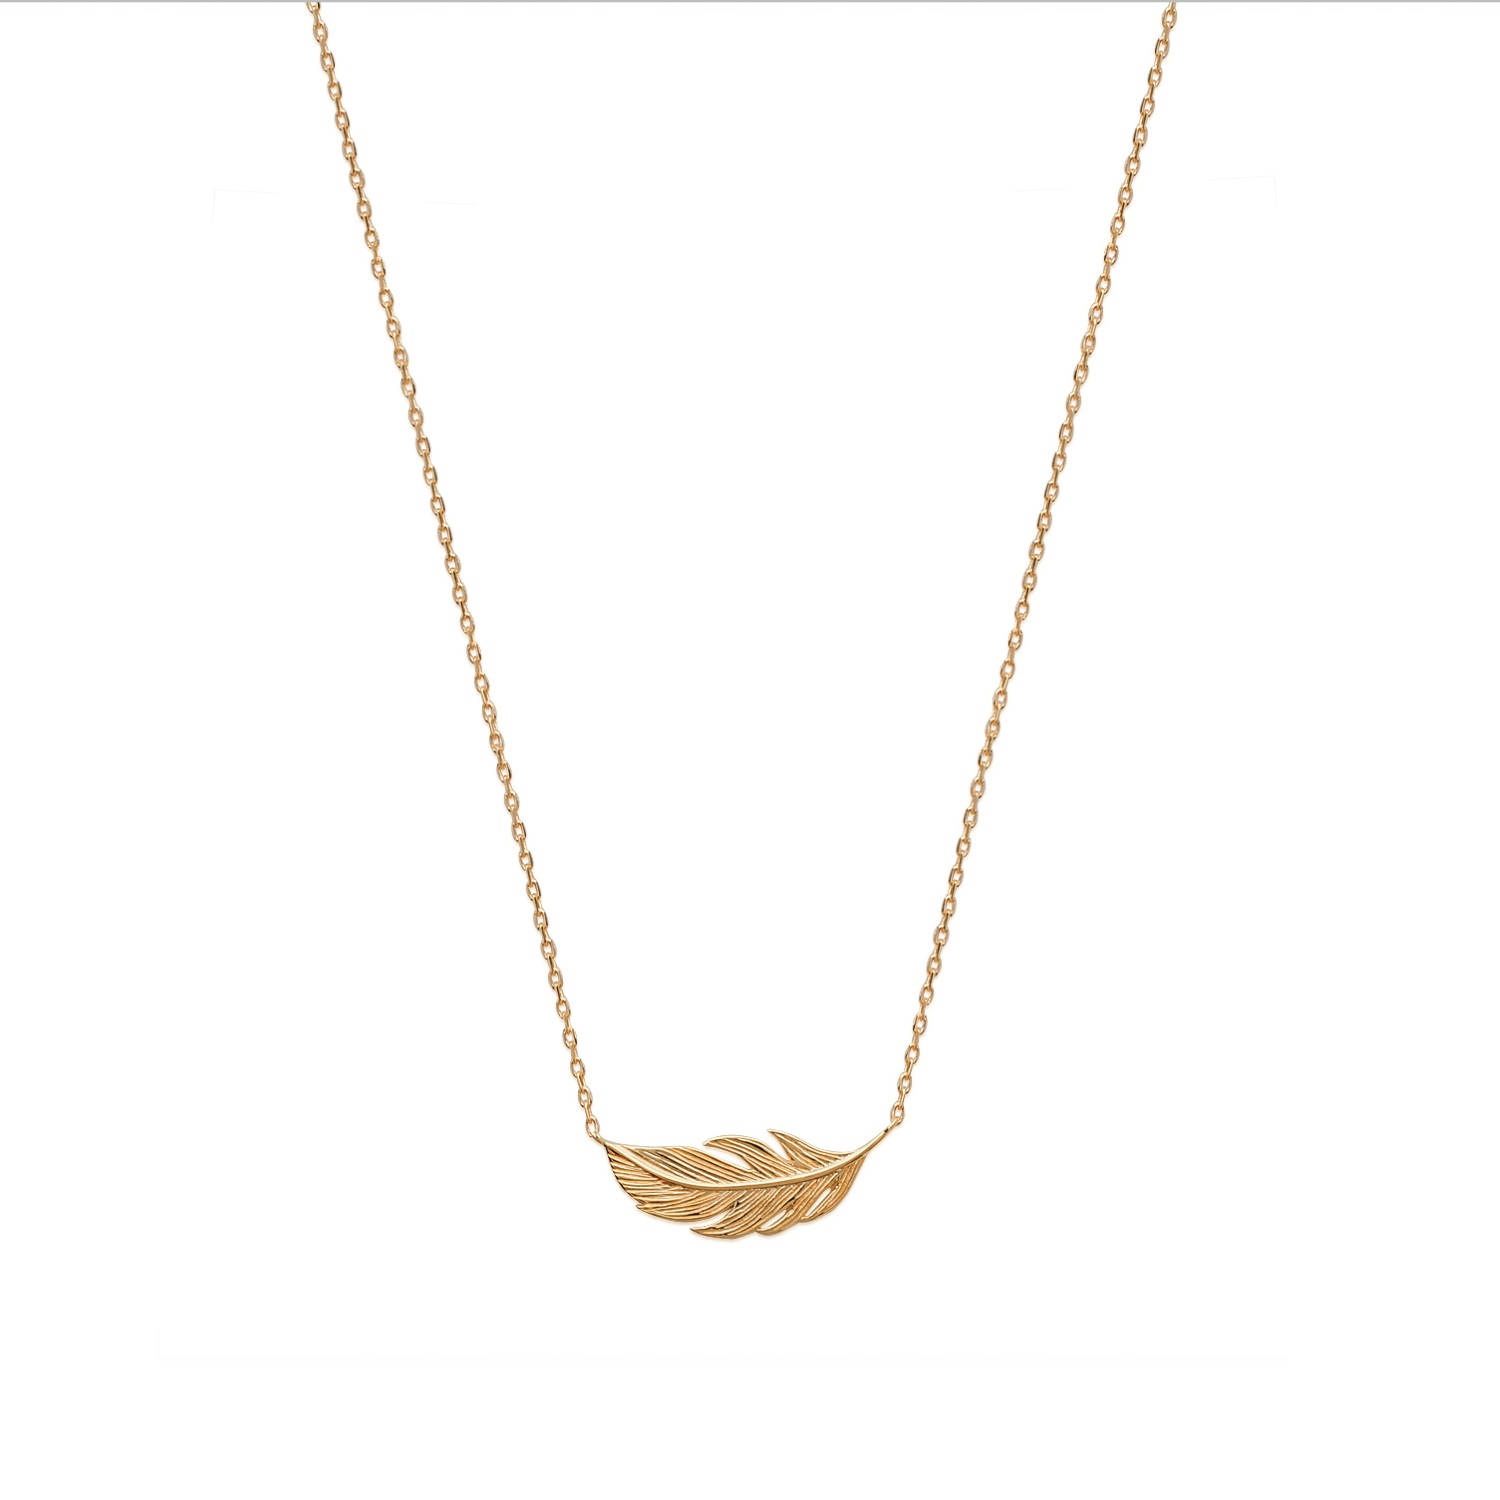 Collier plume en plaqué or. Plume  Adolescent Adulte Femme Fille Indémodable Nature